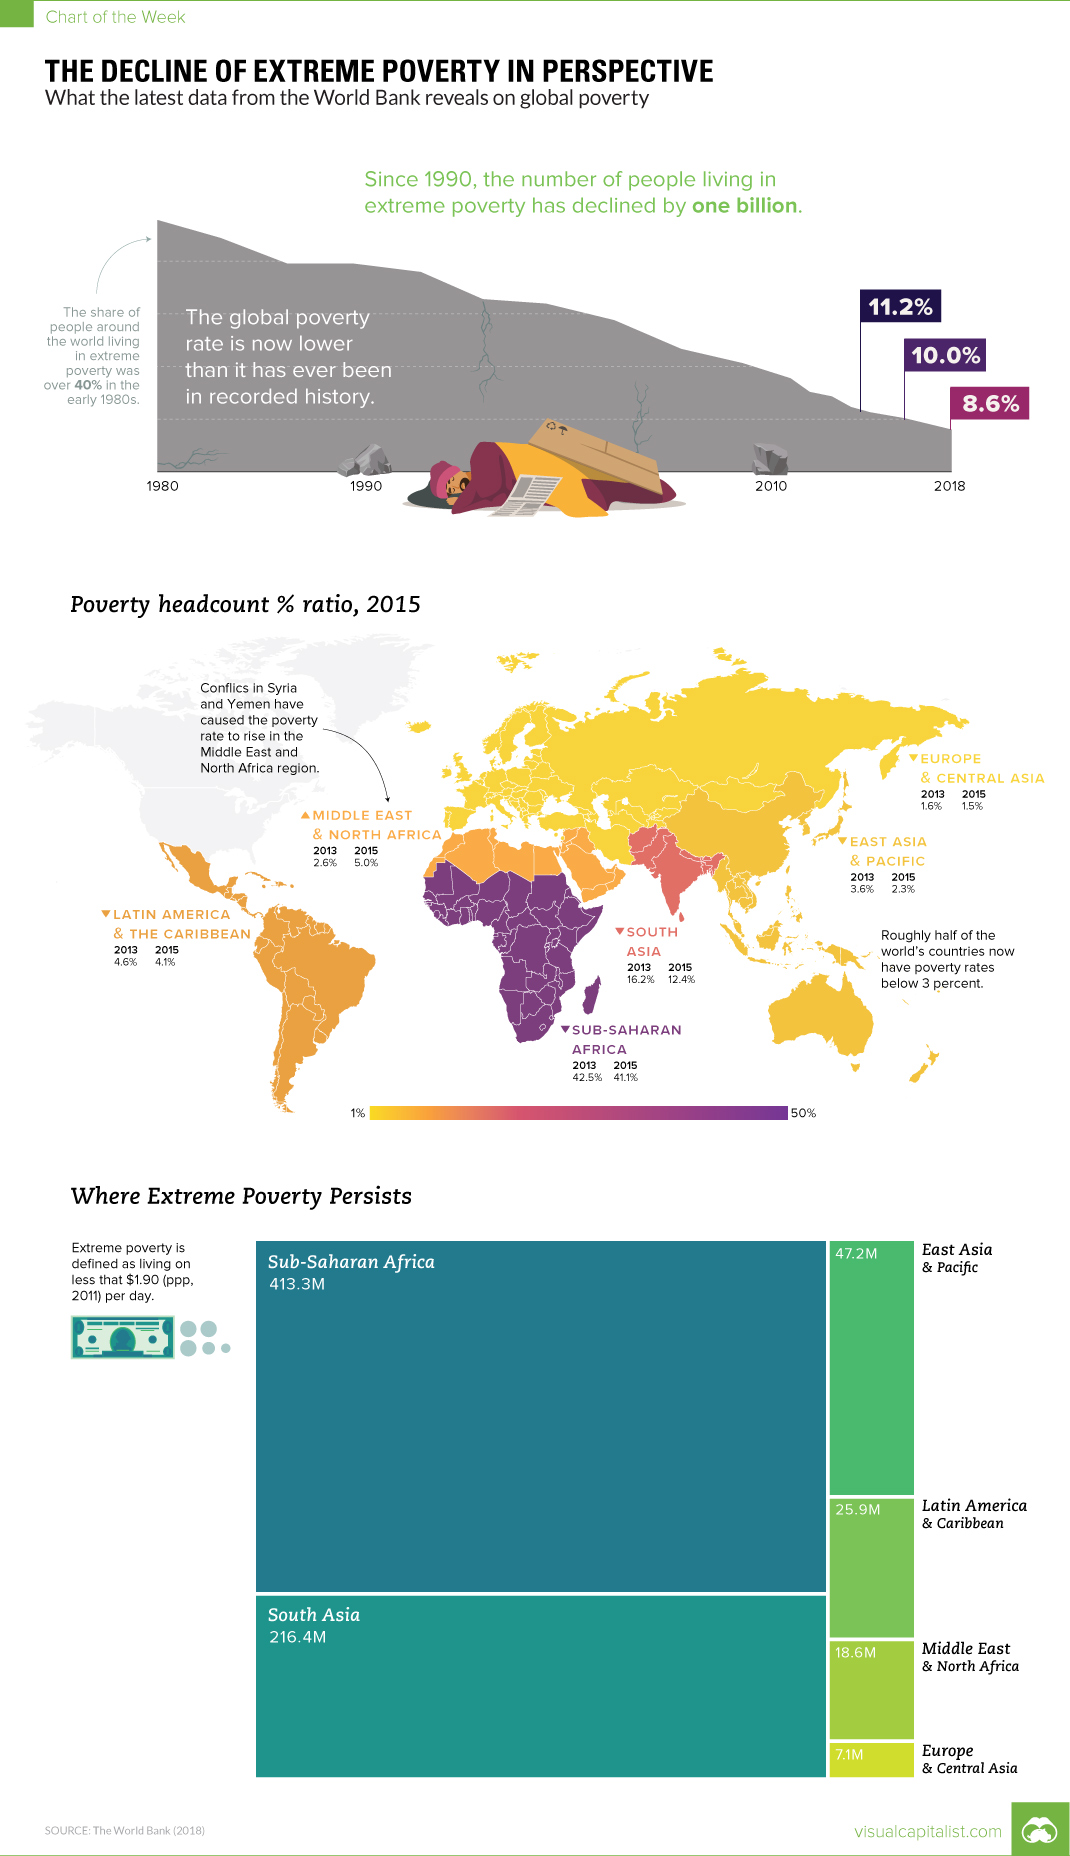 The Decline of Extreme Poverty in Perspective